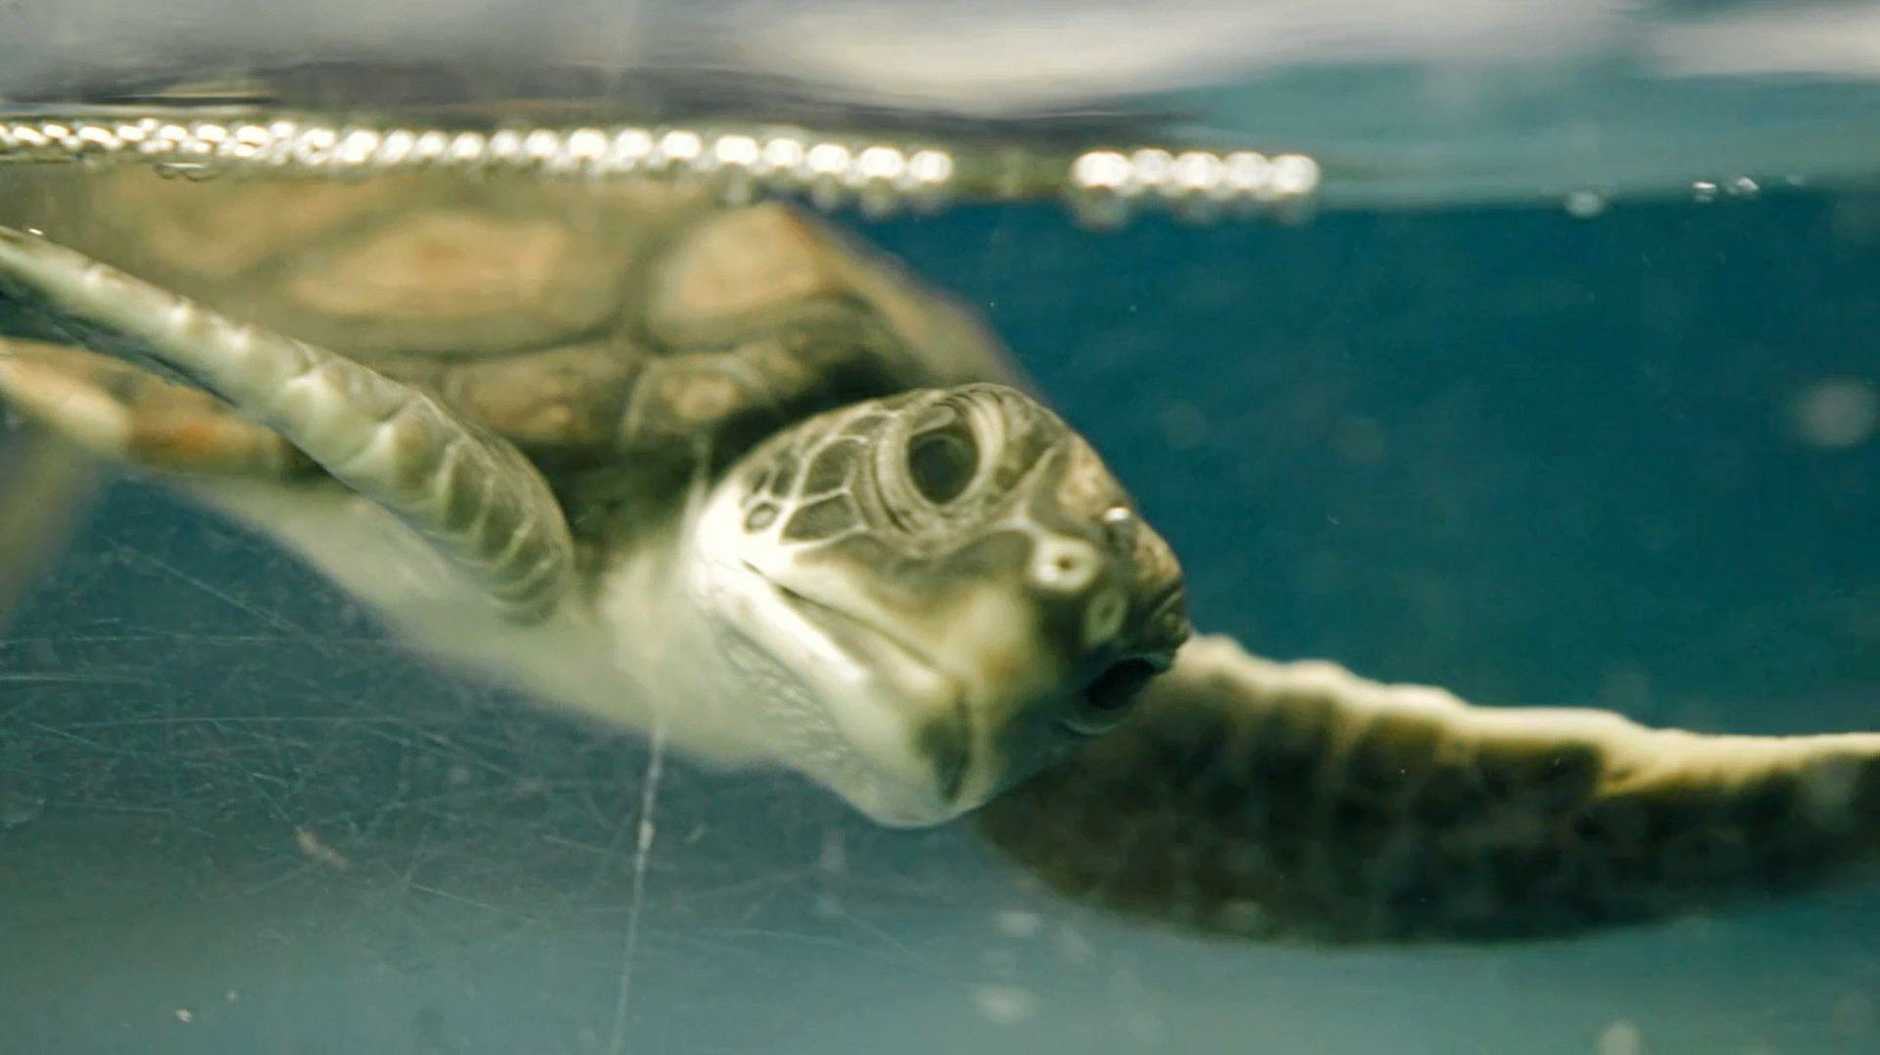 SEALIFE Maroochydore released a rehabilitated juvenile green sea turtle, named Col, back into the wild ahead of World Turtle Day, May 25. Col is the 1000th turtle released by the organisation since 1989.